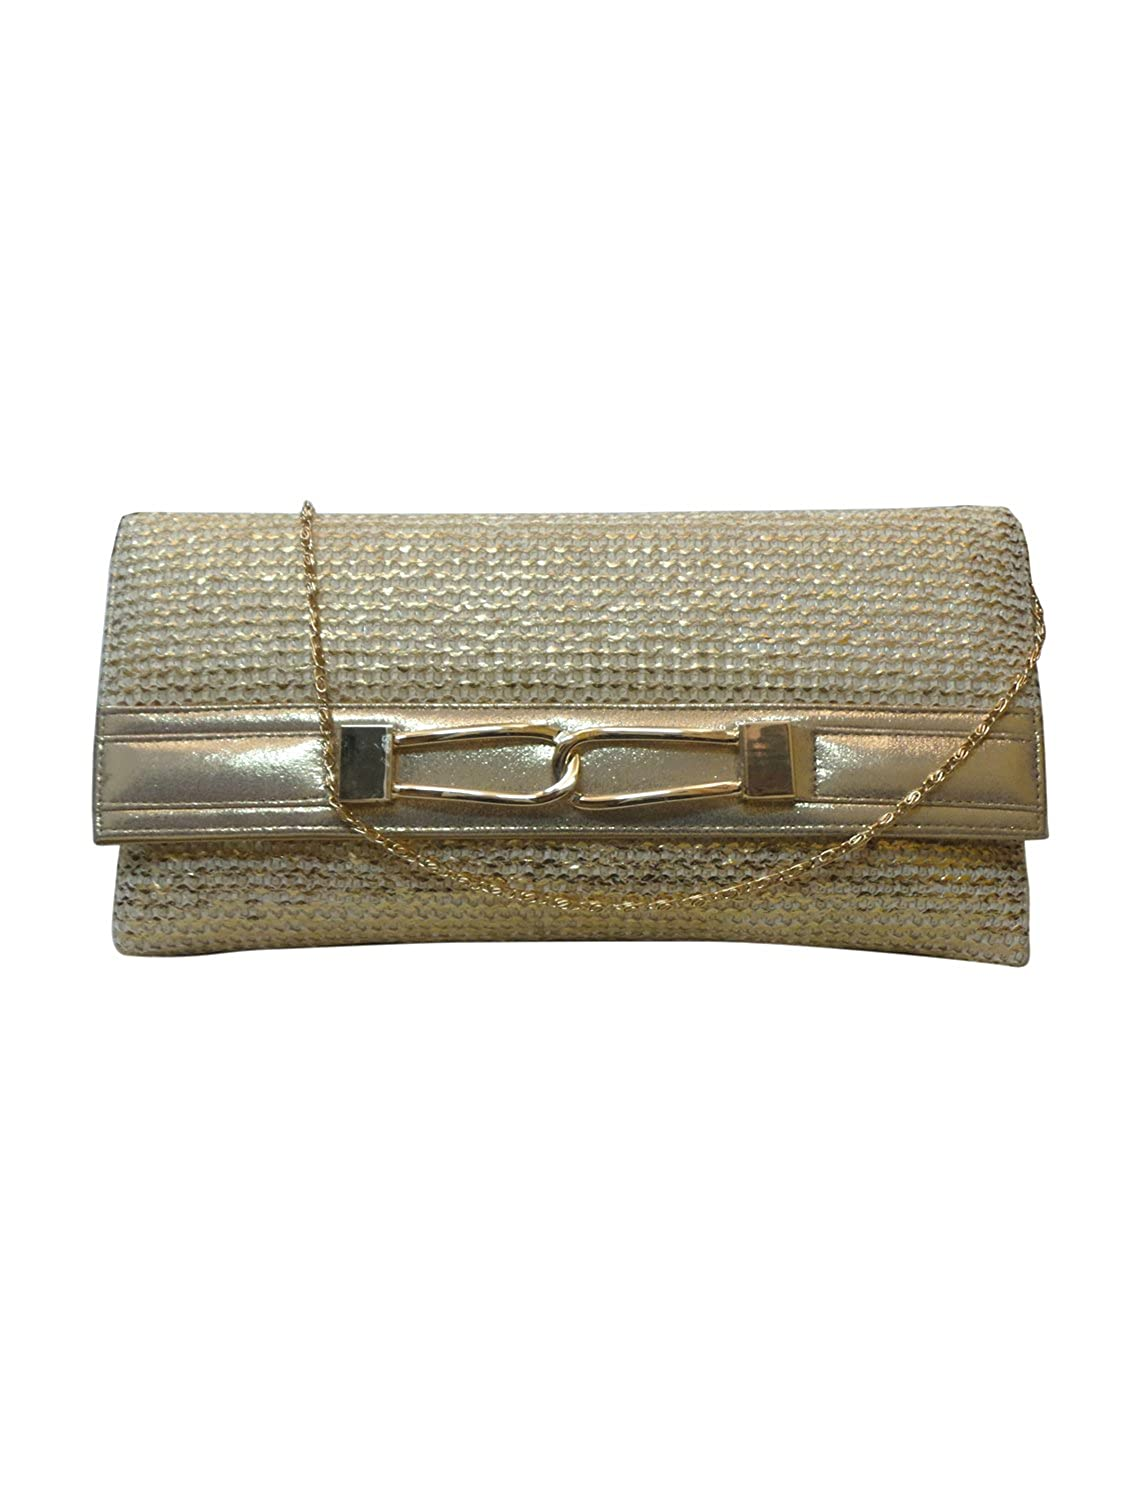 Bhamini Gold Gold Touch Jute Clutch with Metal Loop Brooch